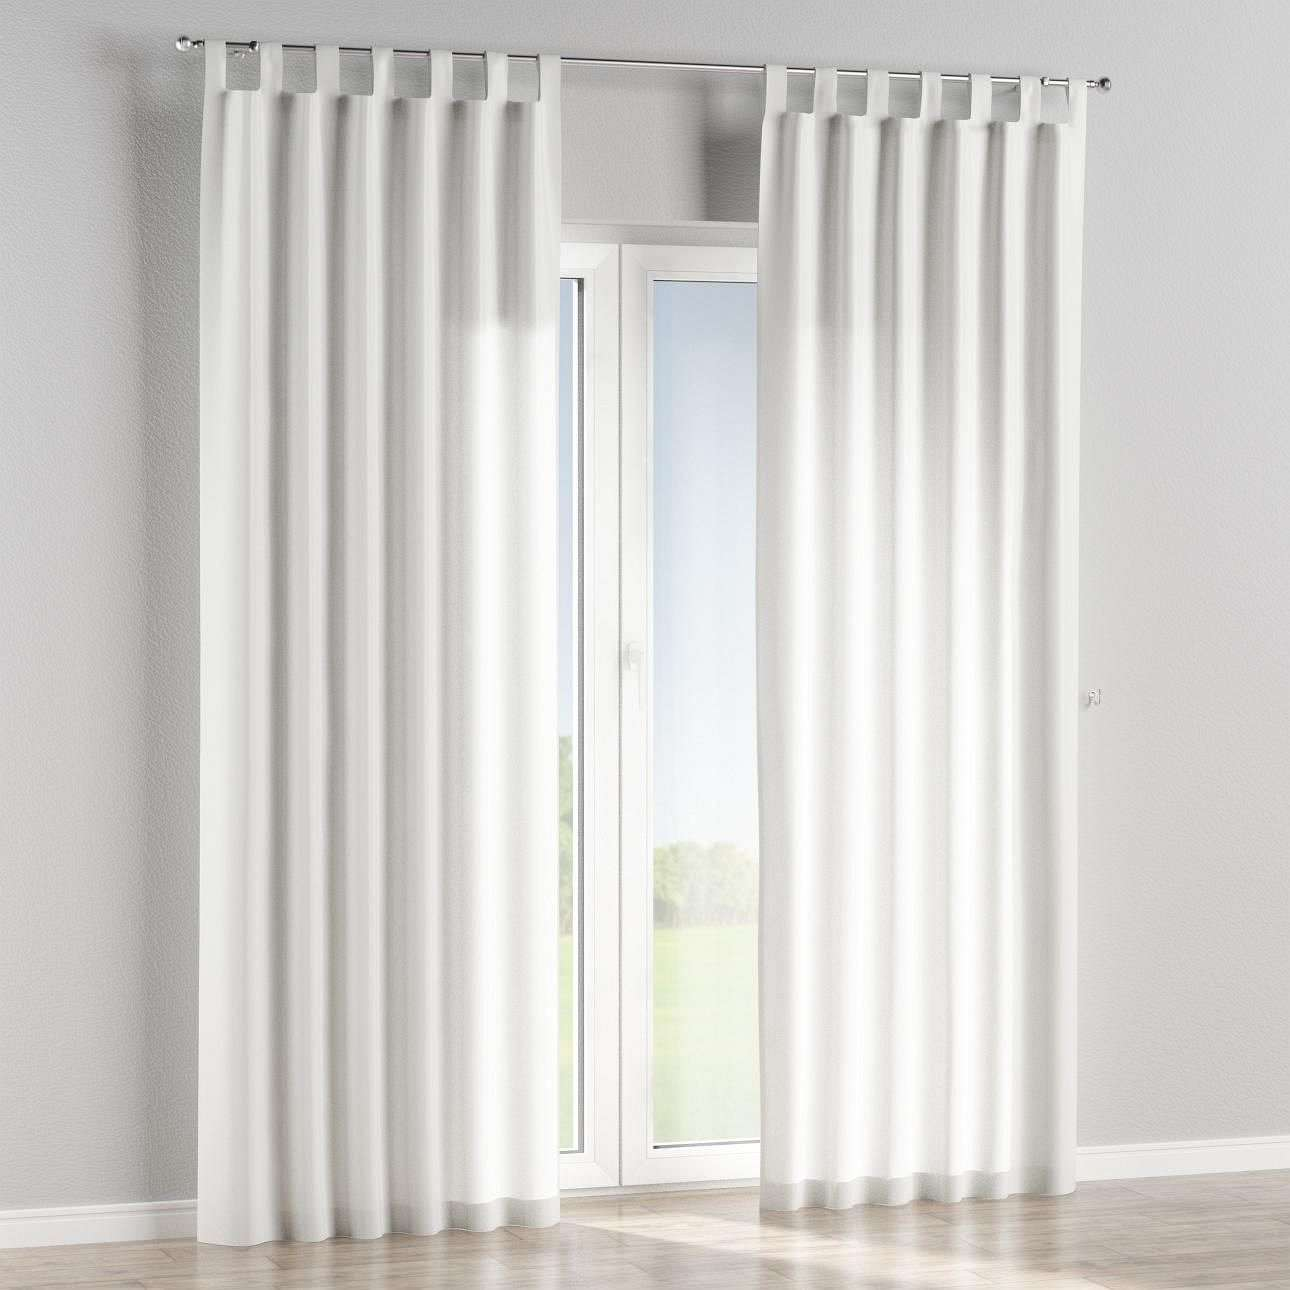 Tab top curtains in collection Rustica, fabric: 138-17